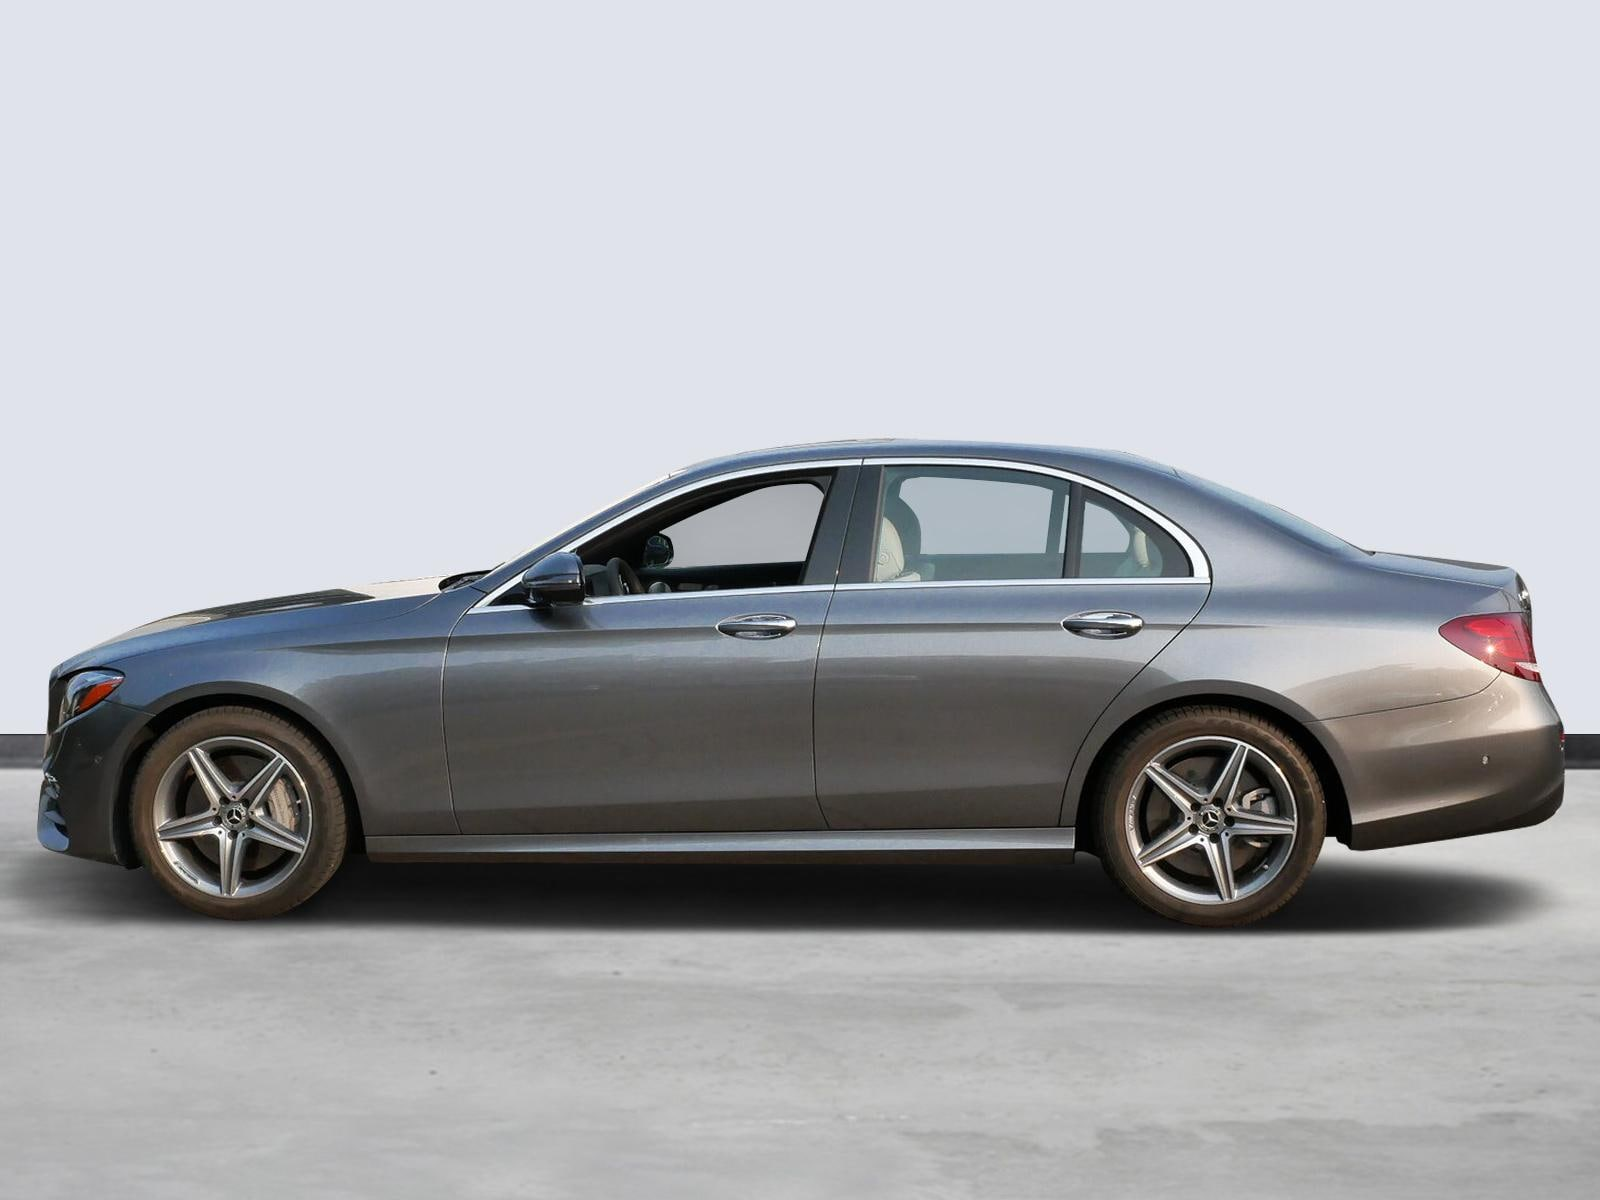 Used 2019 Mercedes-Benz E-Class E450 with VIN WDDZF6JB8KA635706 for sale in Minneapolis, Minnesota